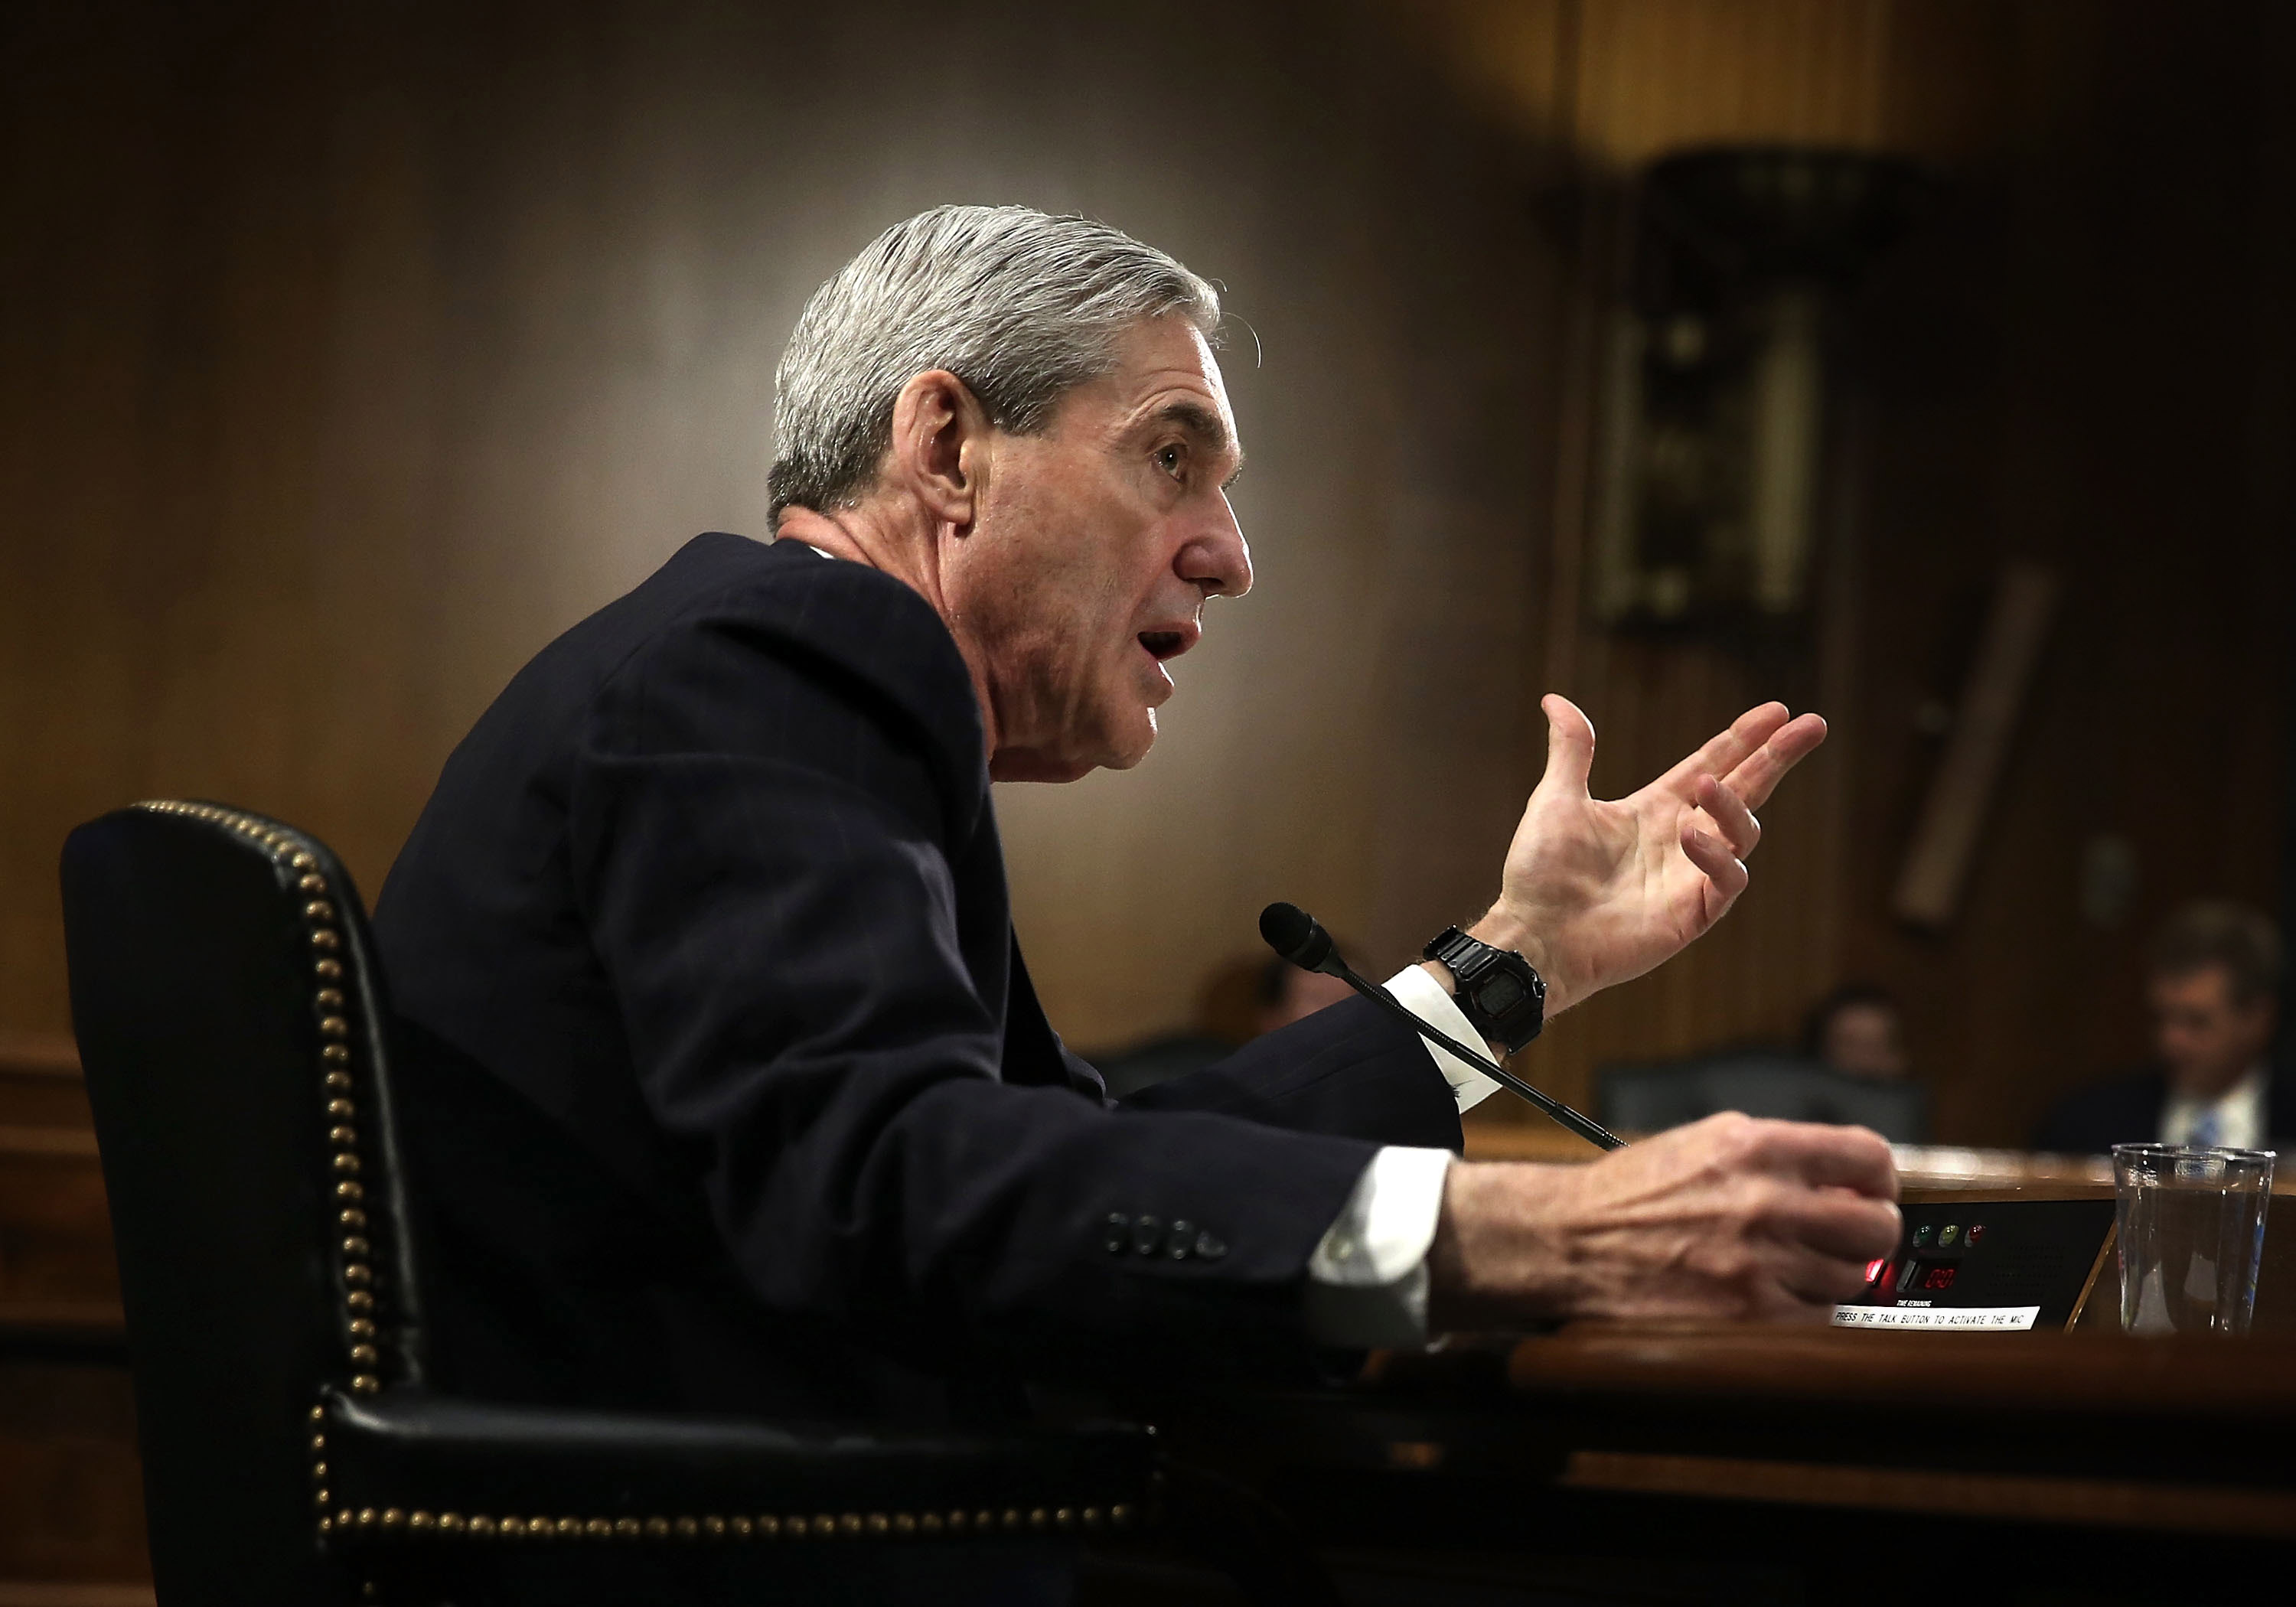 Mueller's longtime aide Aaron Zebley will appear alongside him for House Judiciary testimony